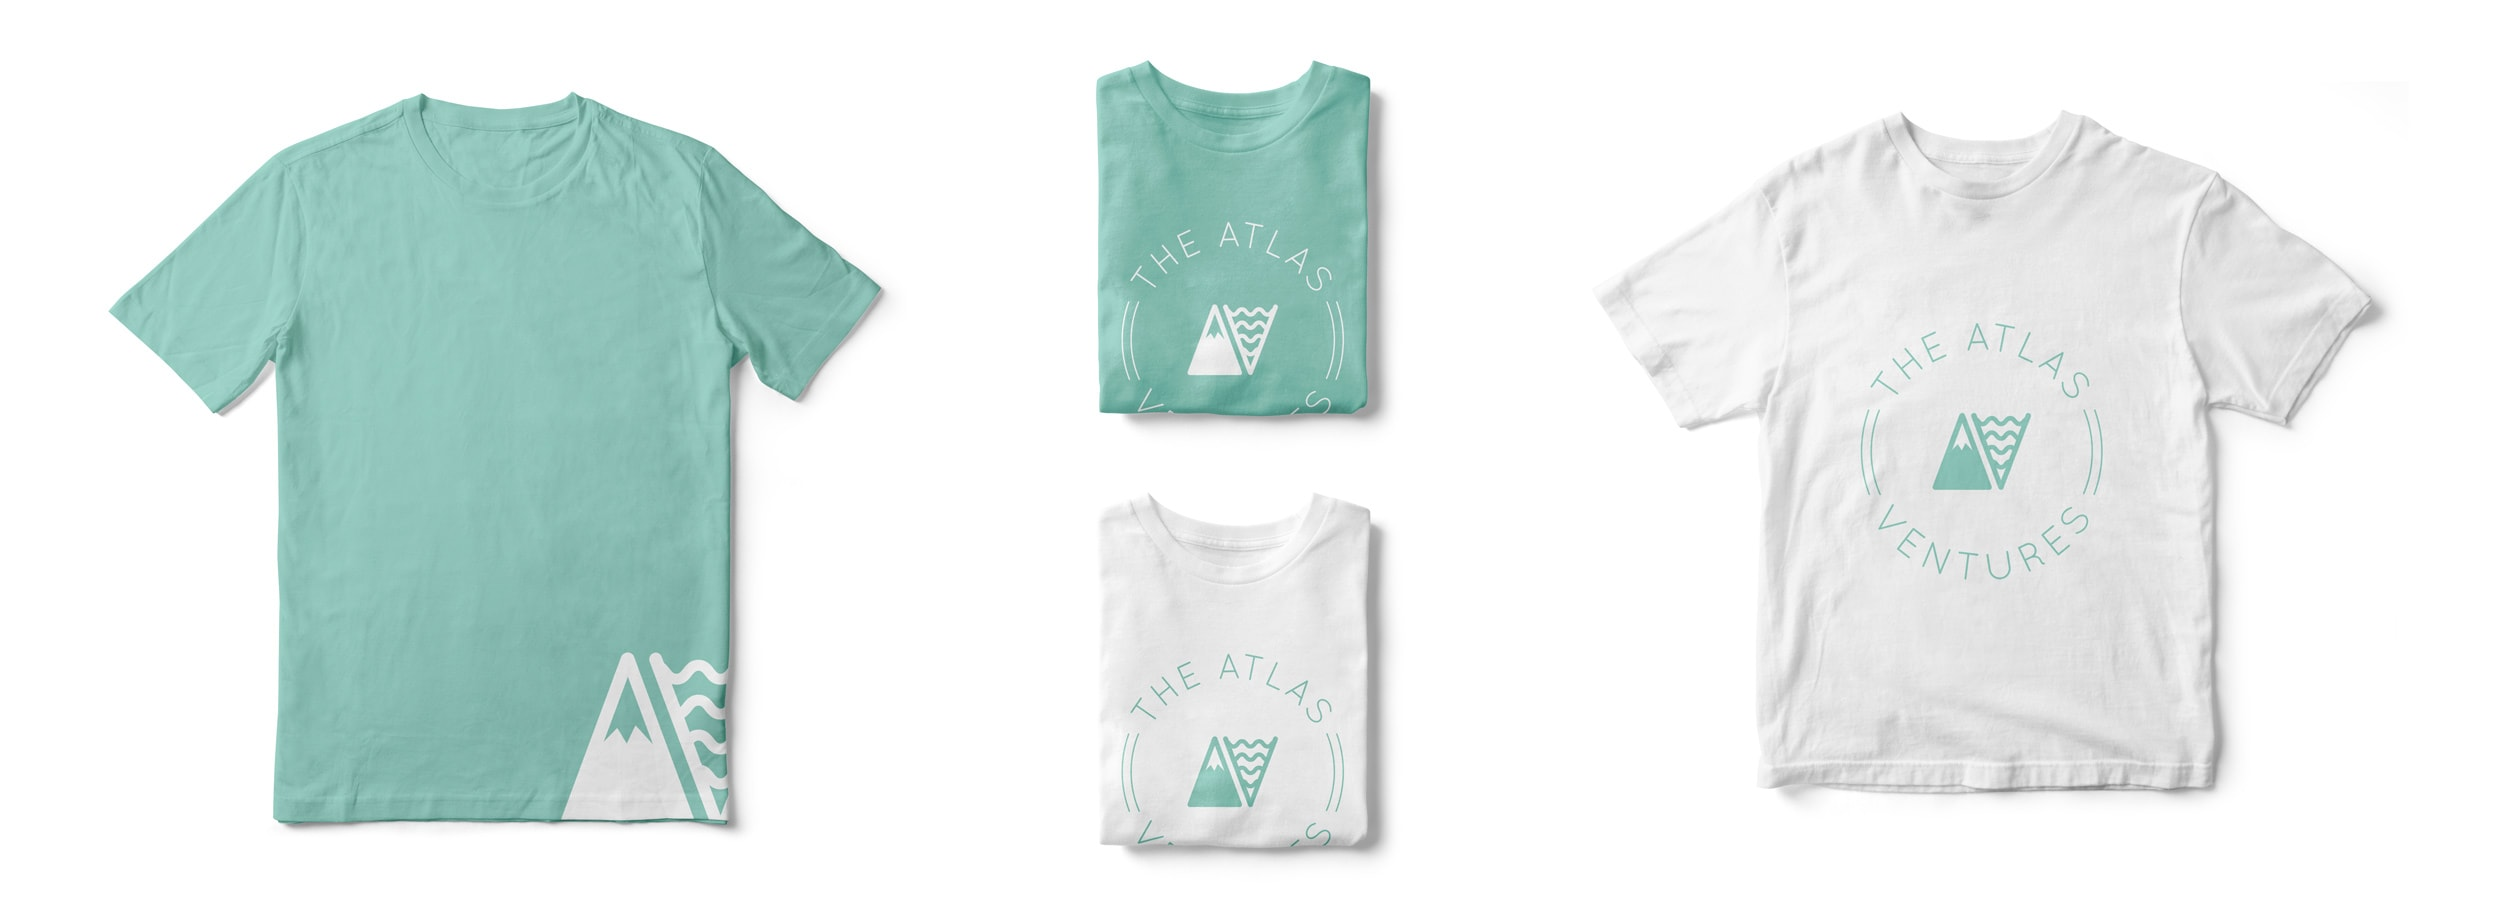 Atlas Venture branded t-shirts in white and teal. © LET'S PANDA, Vancouver